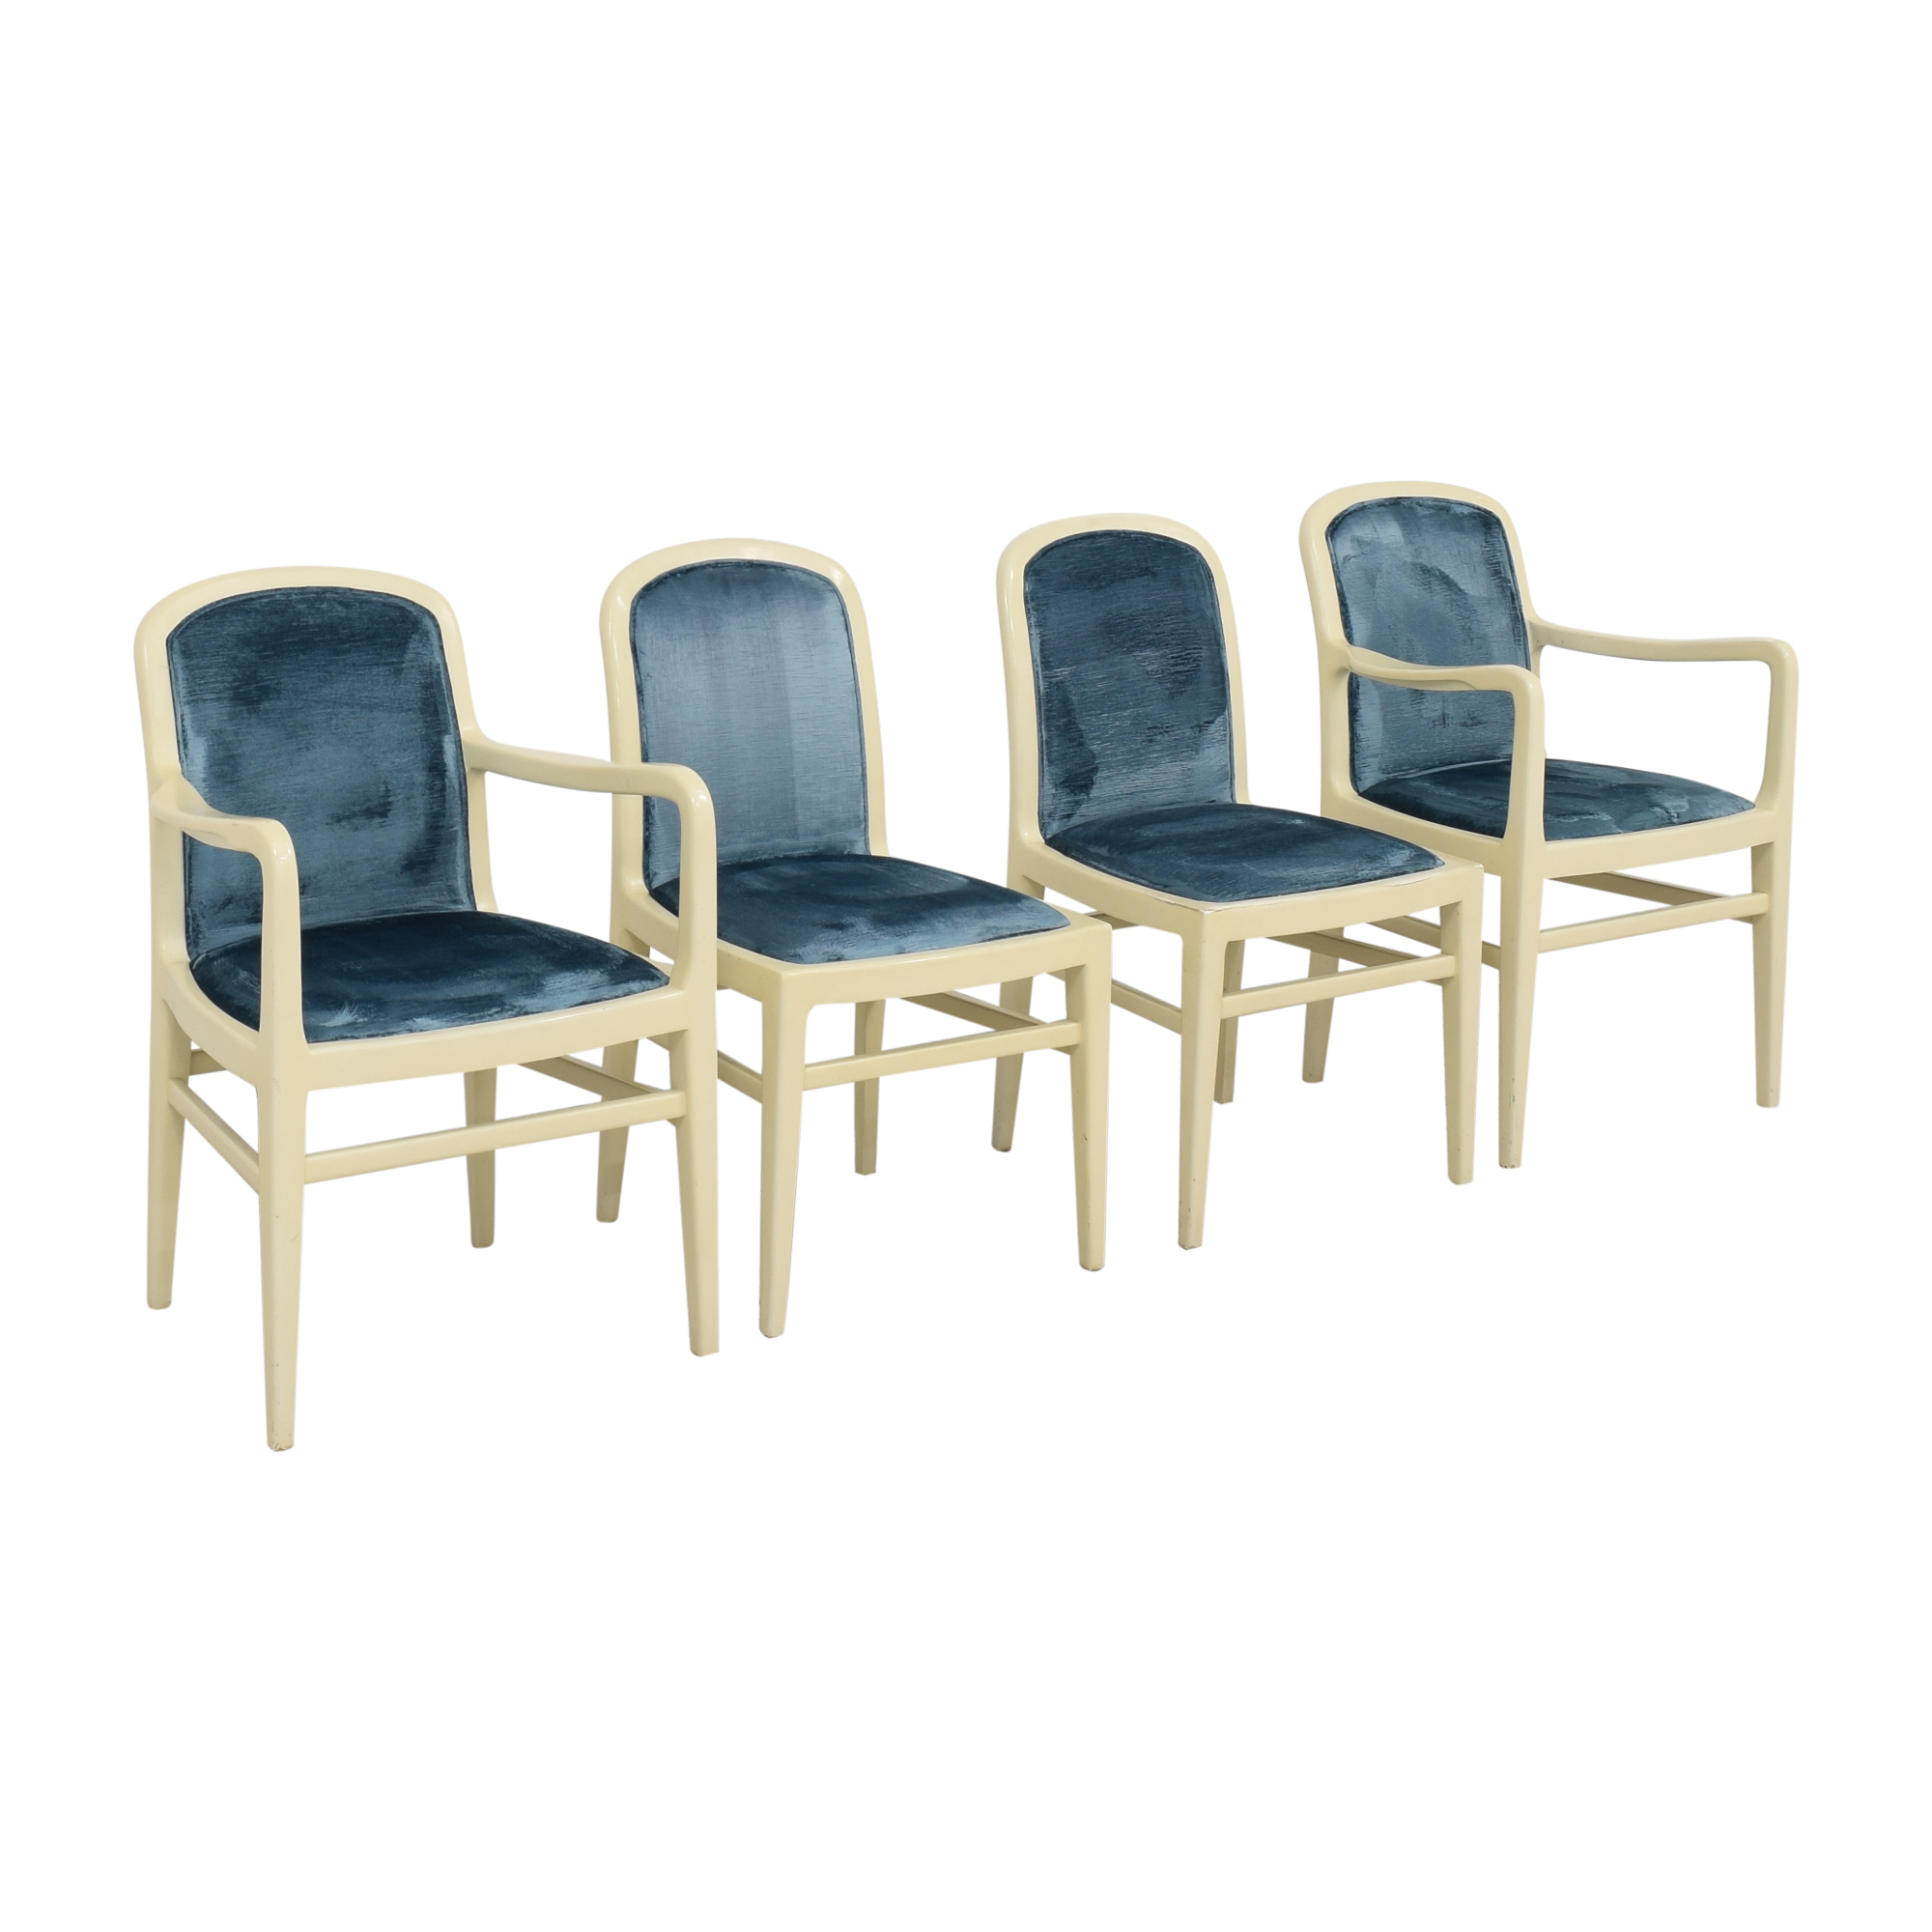 buy Jack Lenor Larson Dining Chairs Jack Lenor Larson Dining Chairs